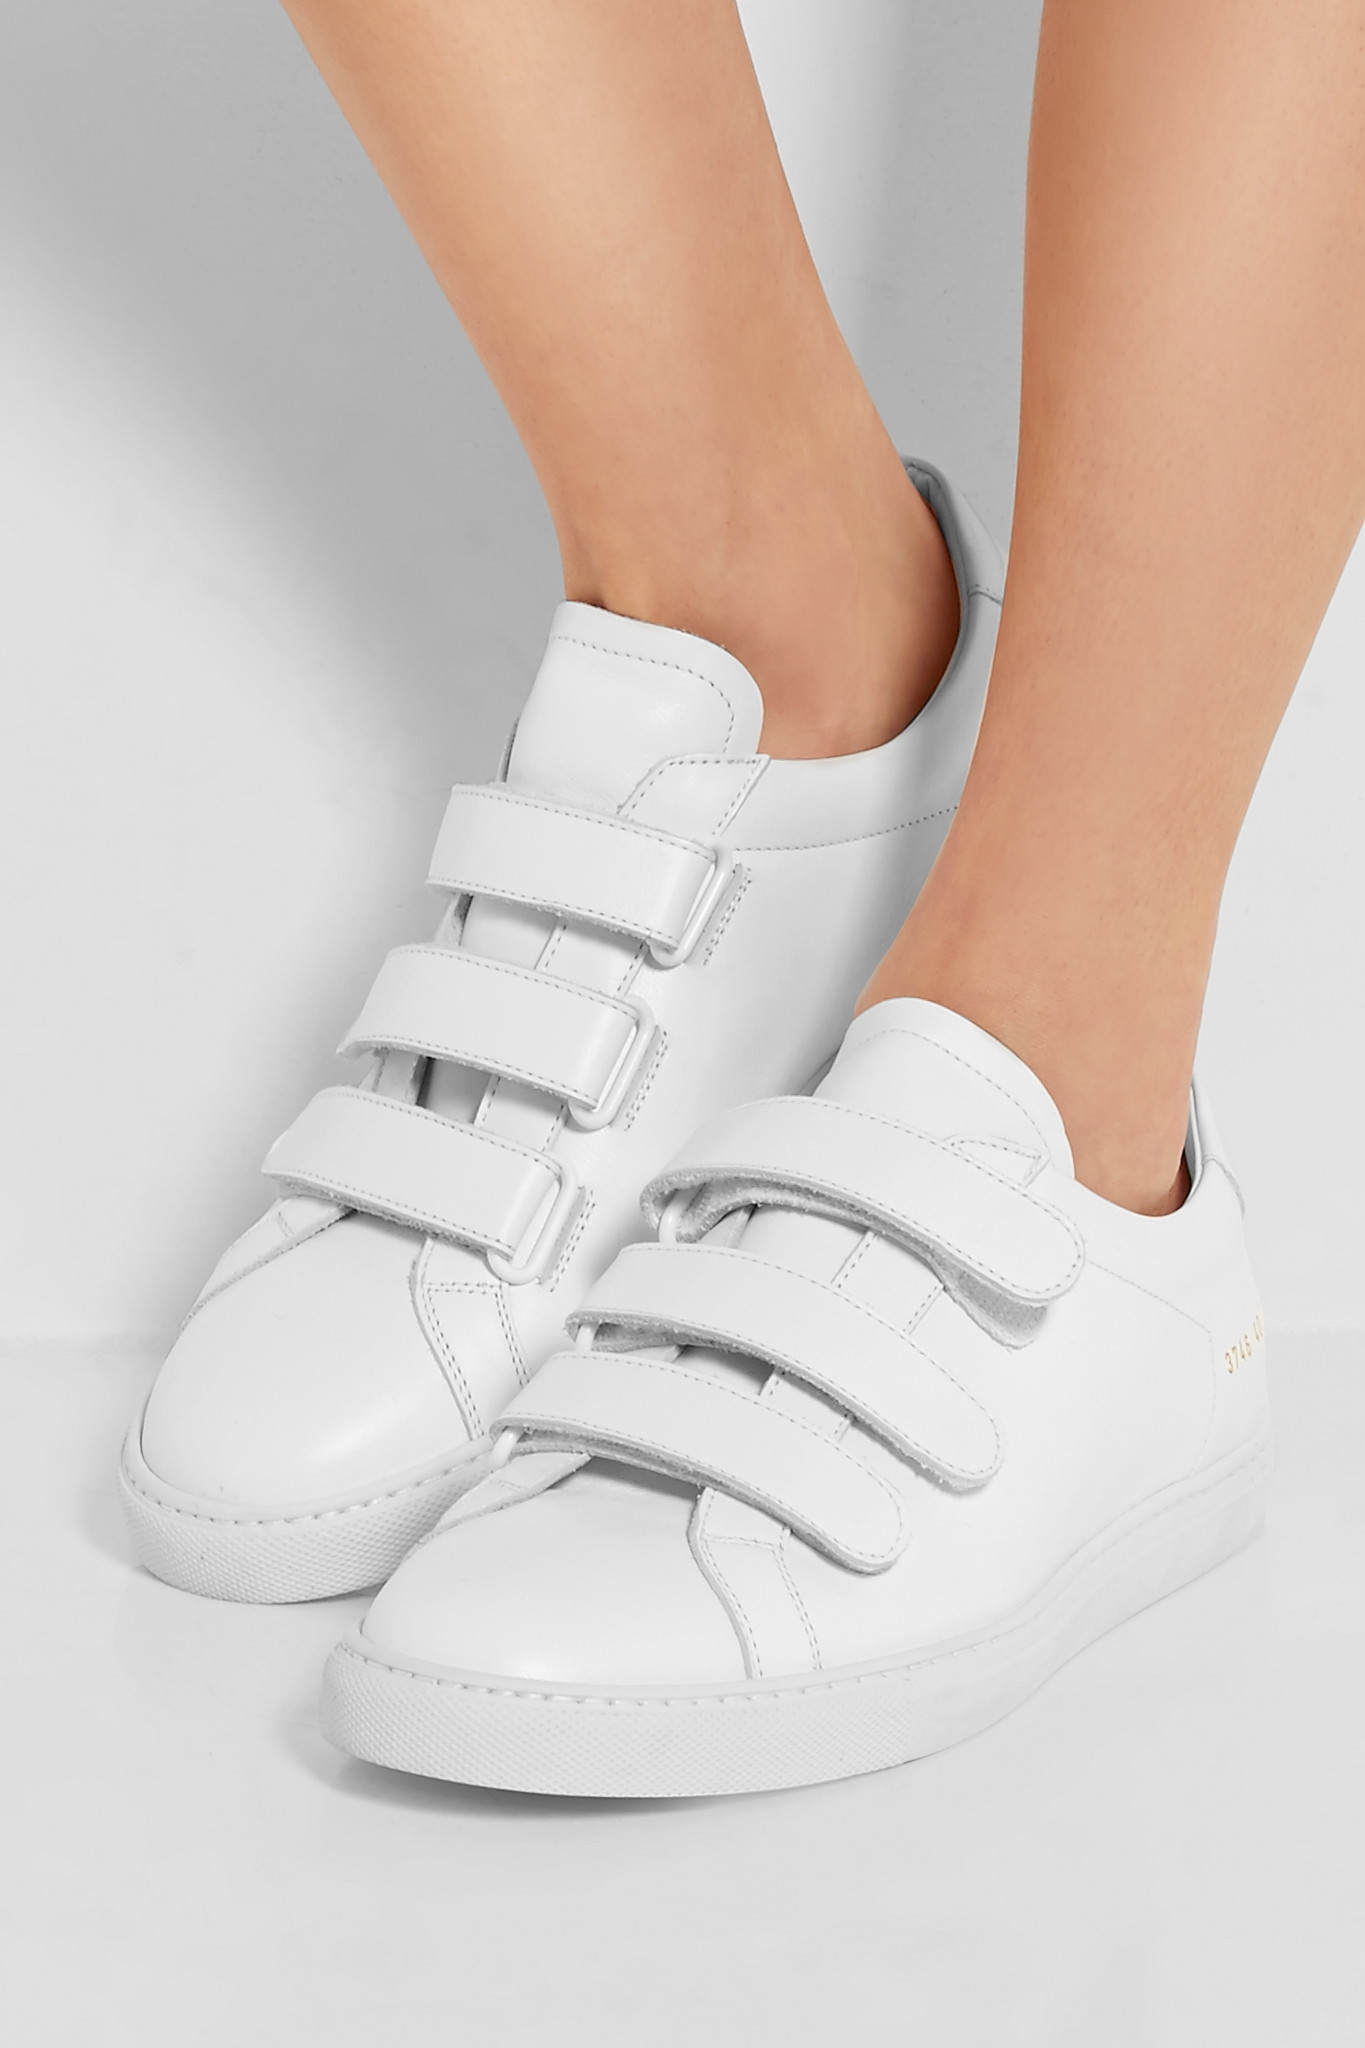 1521bc45086b4 Common Projects Achilles Three Strap Leather Sneakers in White - Lyst